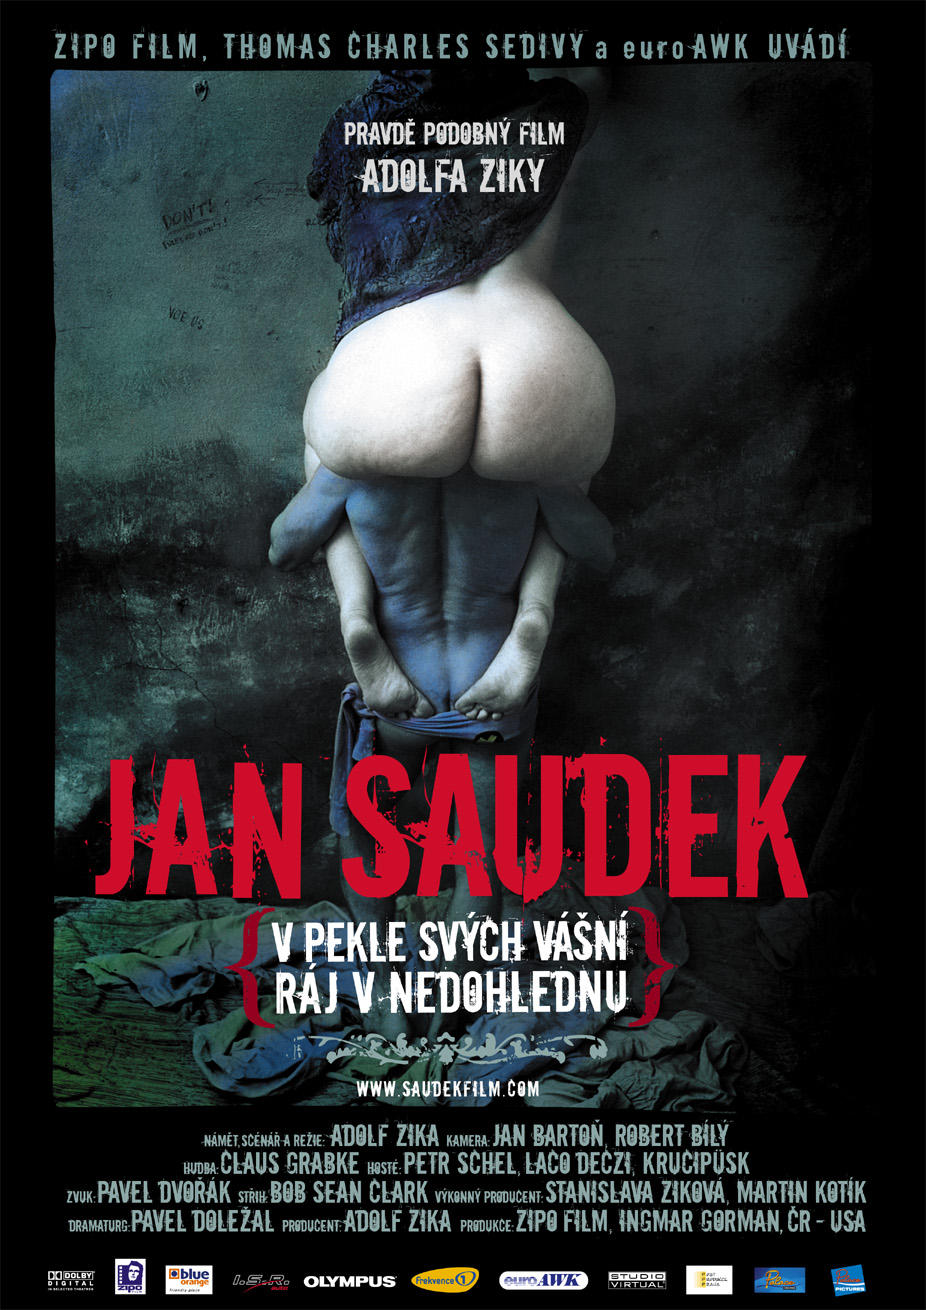 http://upload.wikimedia.org/wikipedia/commons/9/93/Poster_JAN_SAUDEK.jpg